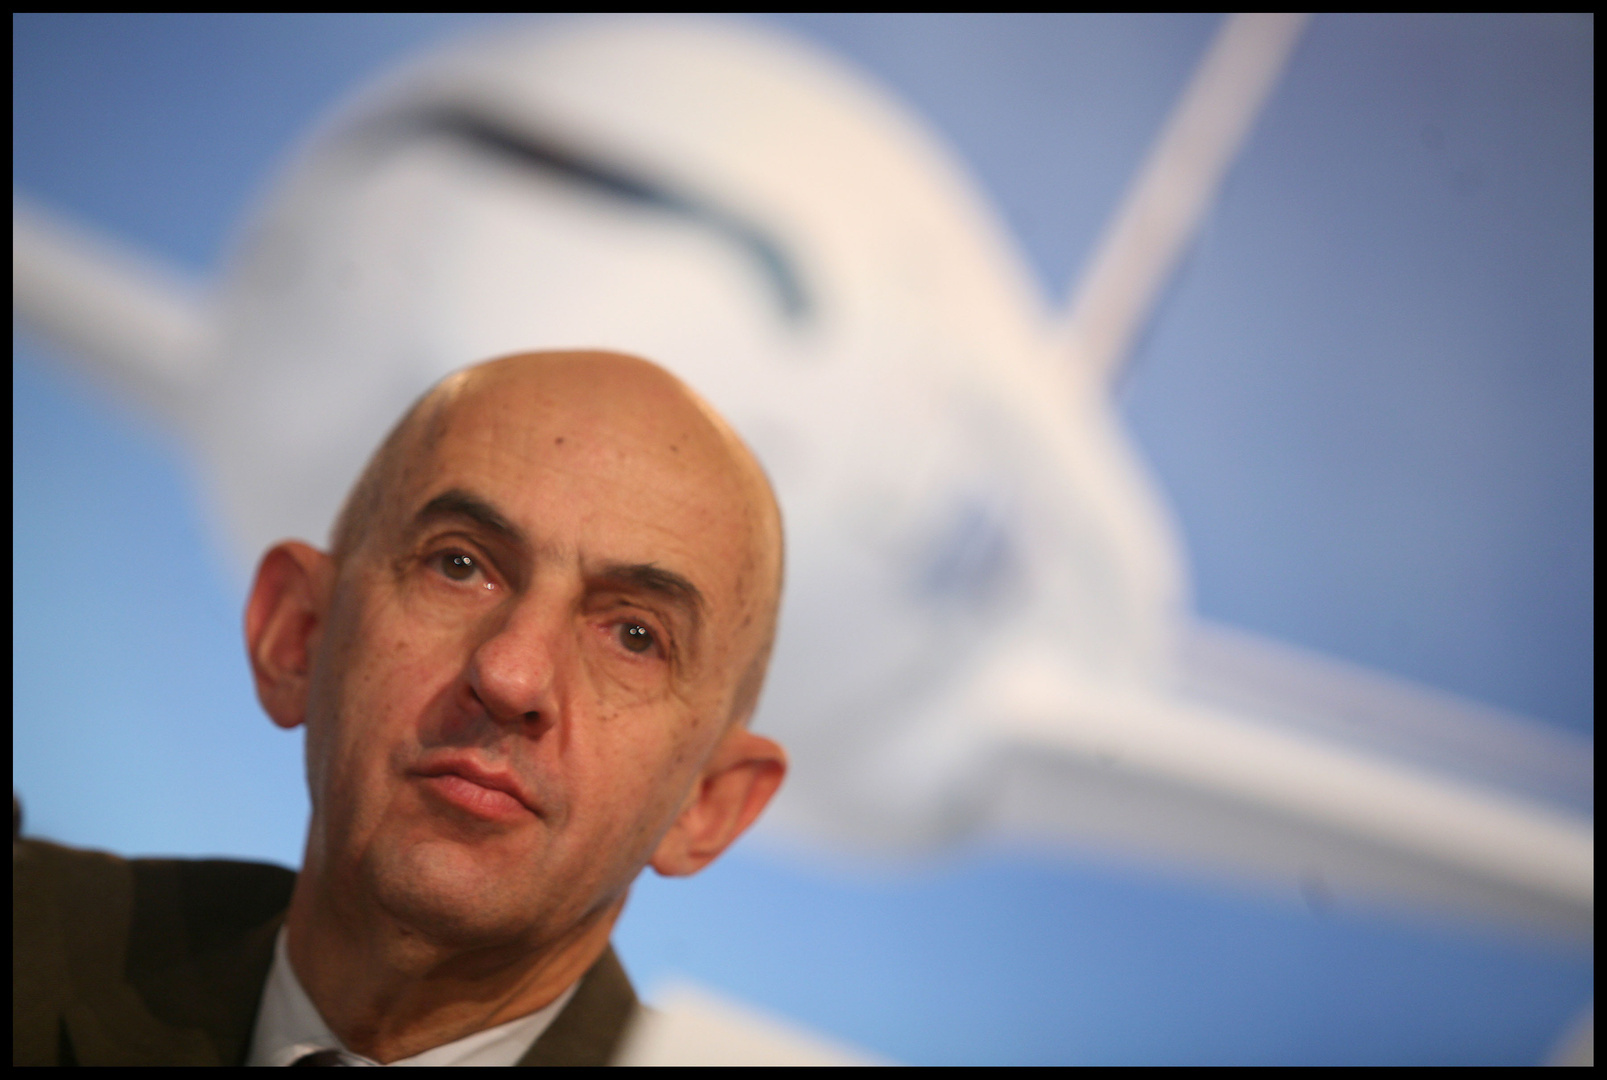 Airbus chief executive, Louis Gallois